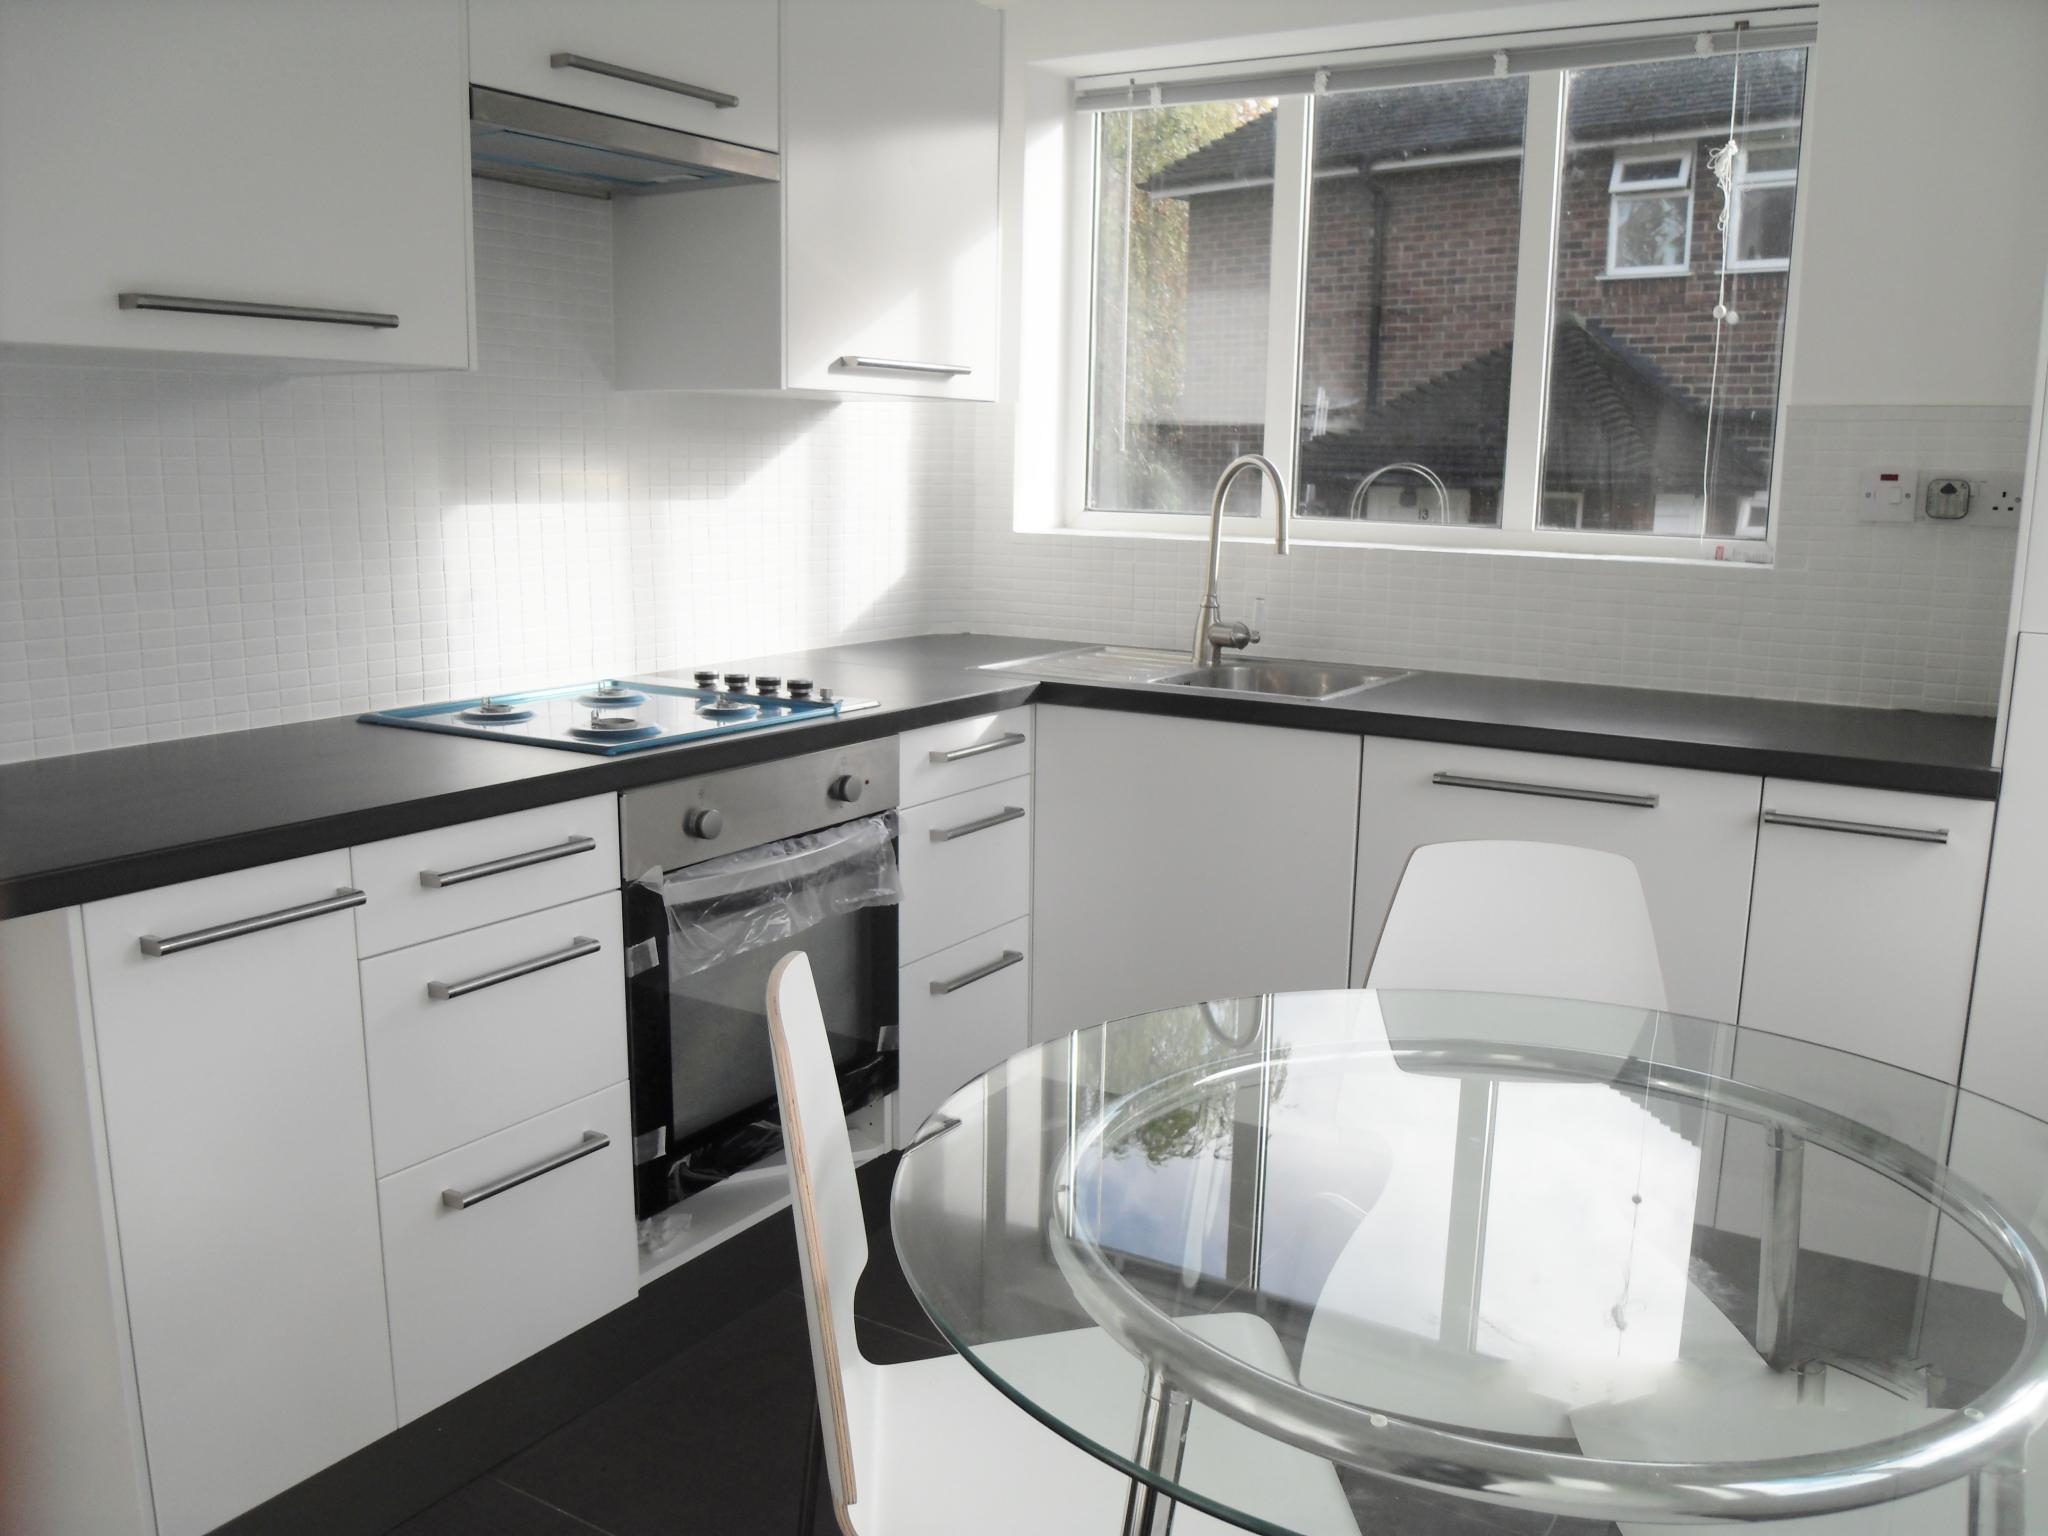 2 bedroom flat flat/apartment To Let in Edgware - Fitted Kitchen/dinning area